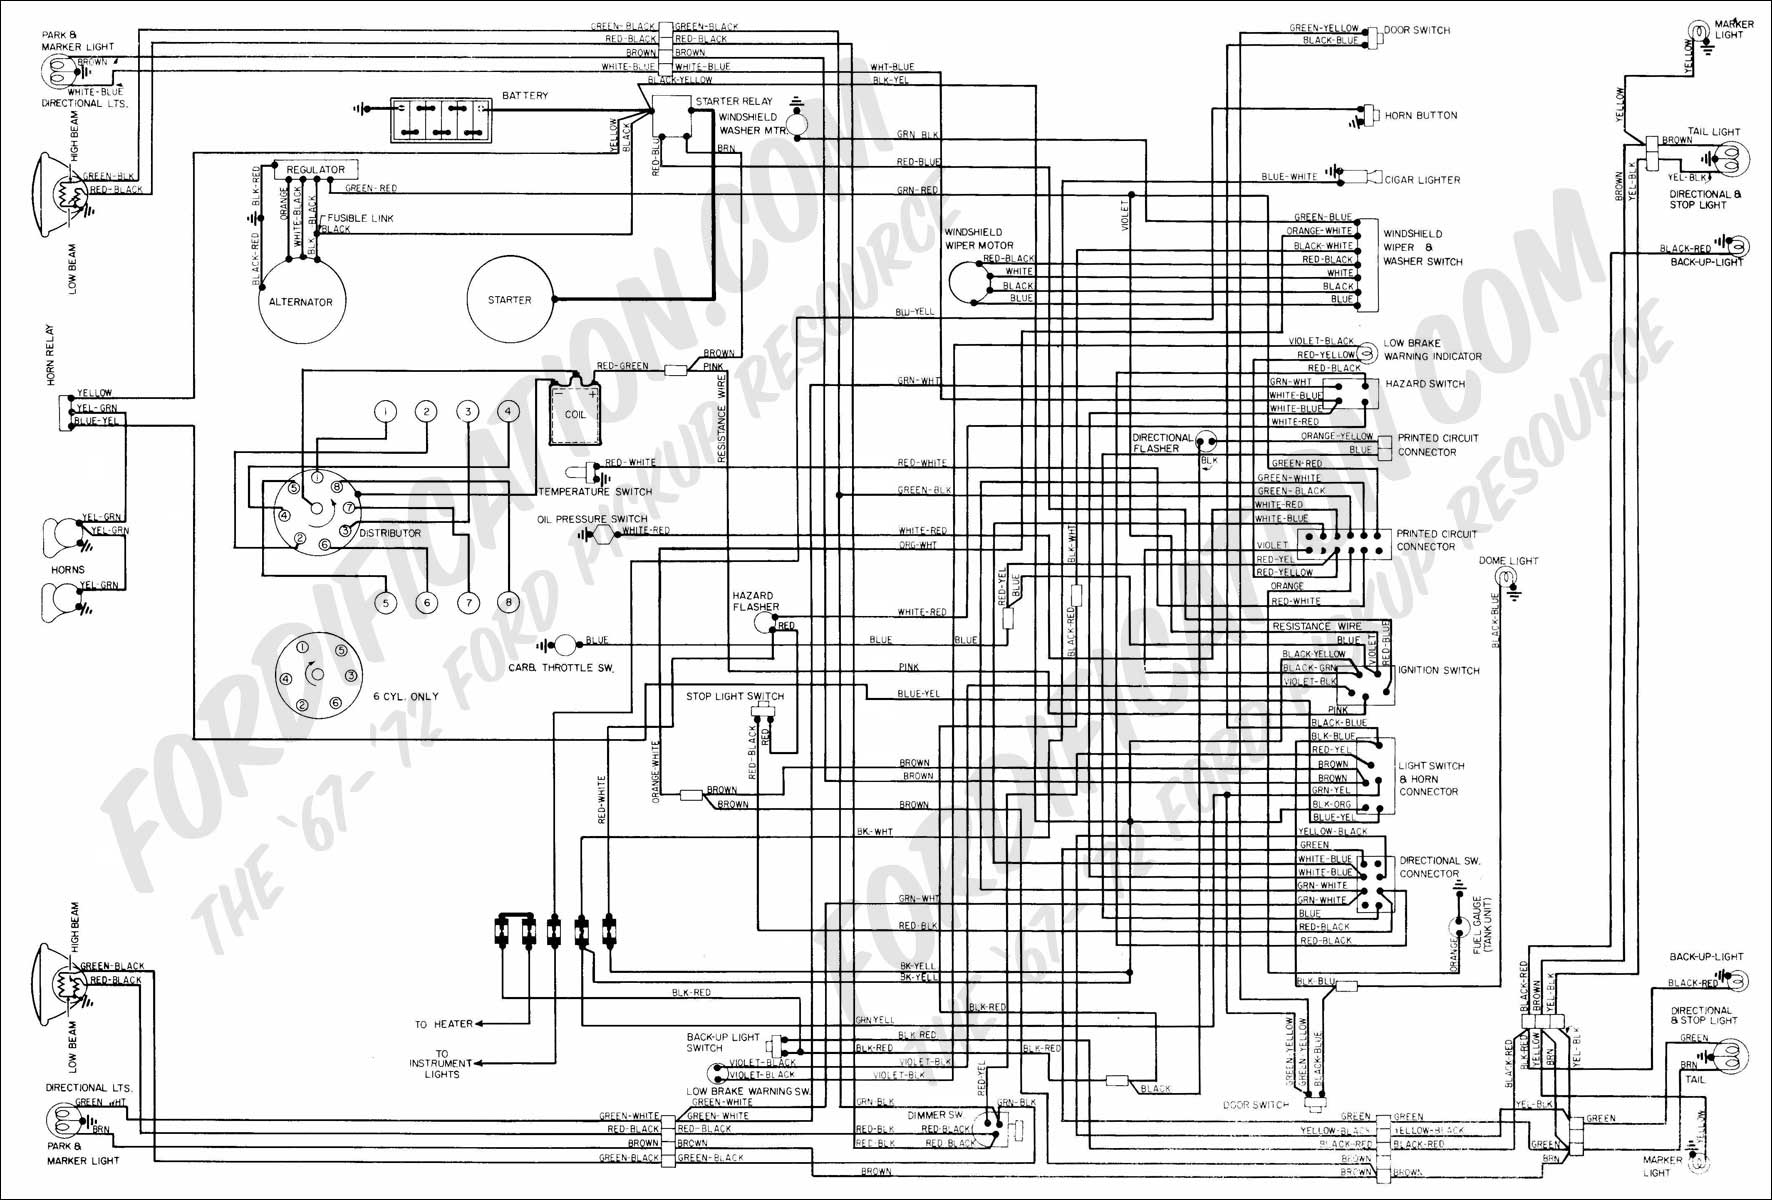 wiring diagram 72_quick 2007 ford f 150 trailer wiring diagram wiring diagram simonand 2007 ford f150 wiring diagram at crackthecode.co